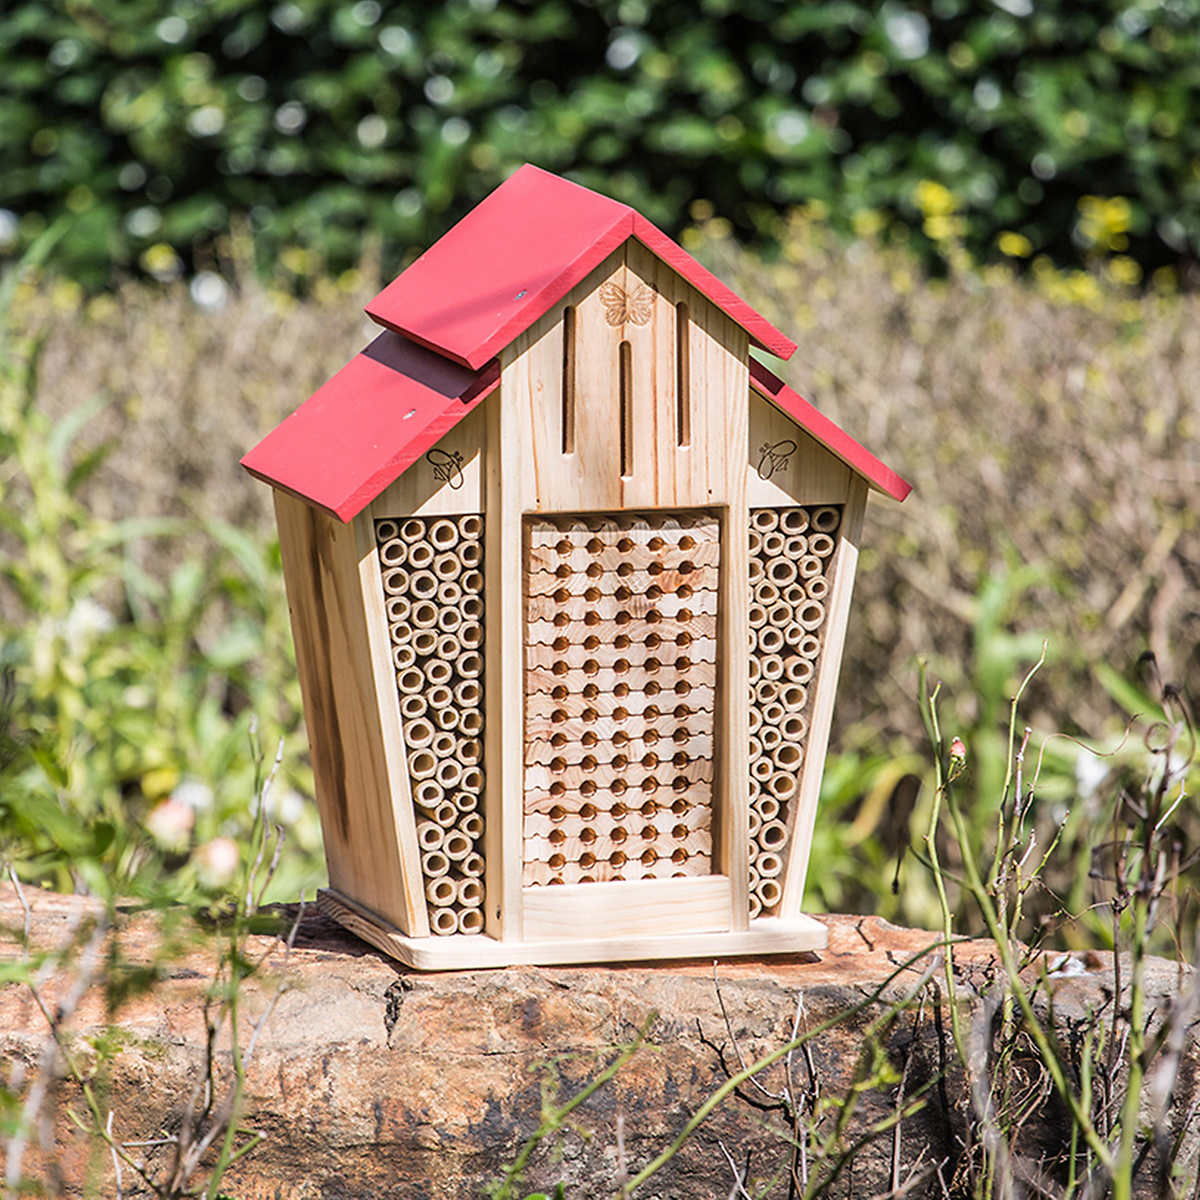 This Adorable 'Bee House' Is One of the Best Ways to Help the Bee Population